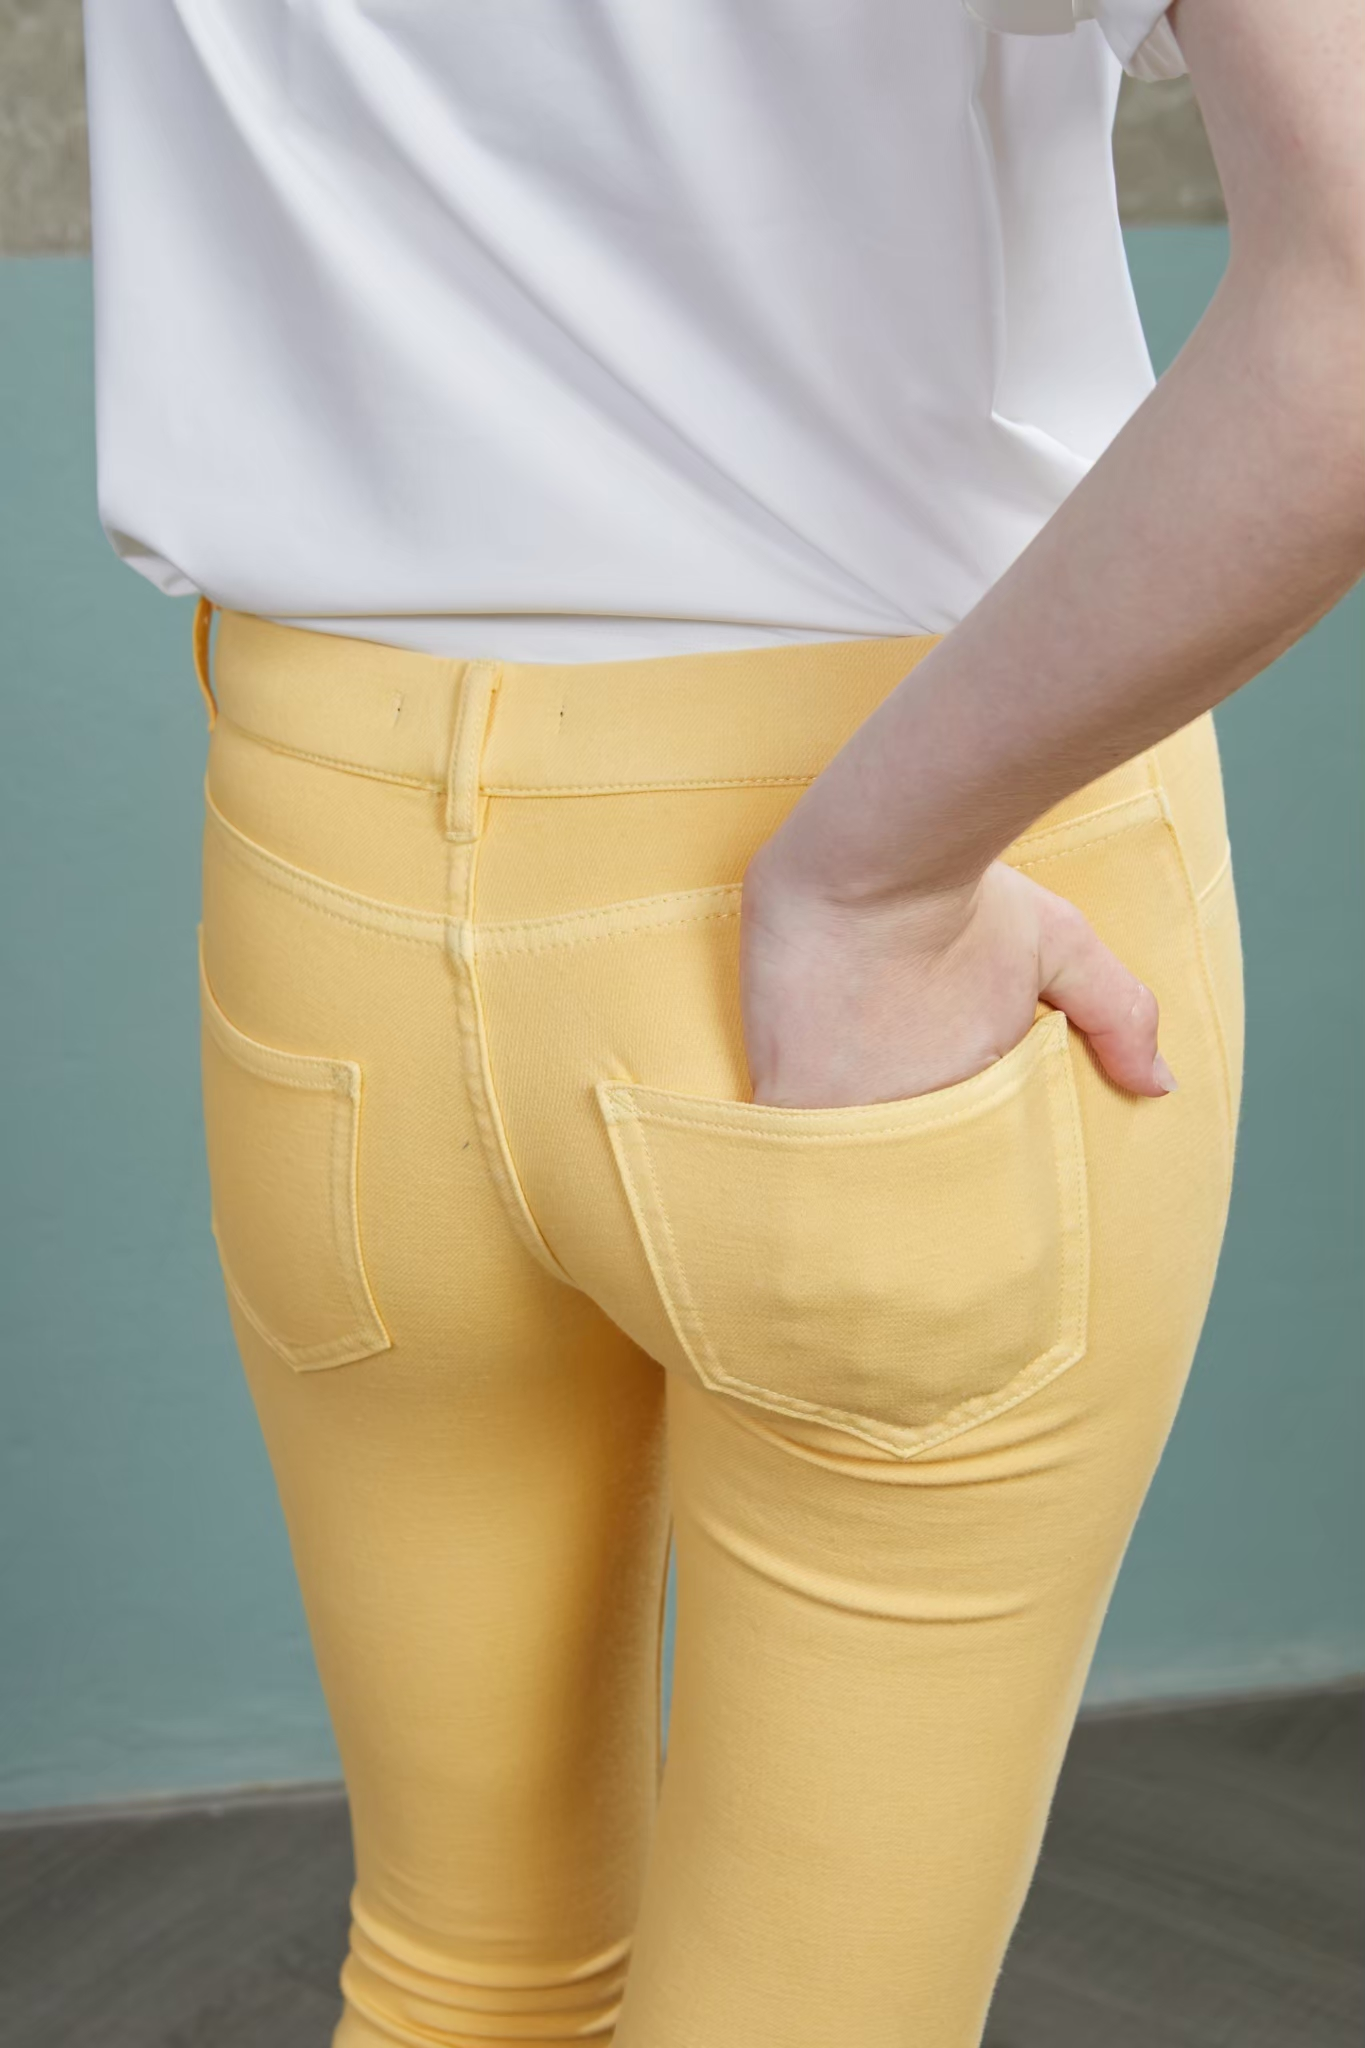 DM08 - Primrose Yellow Leggings - In Stock Now